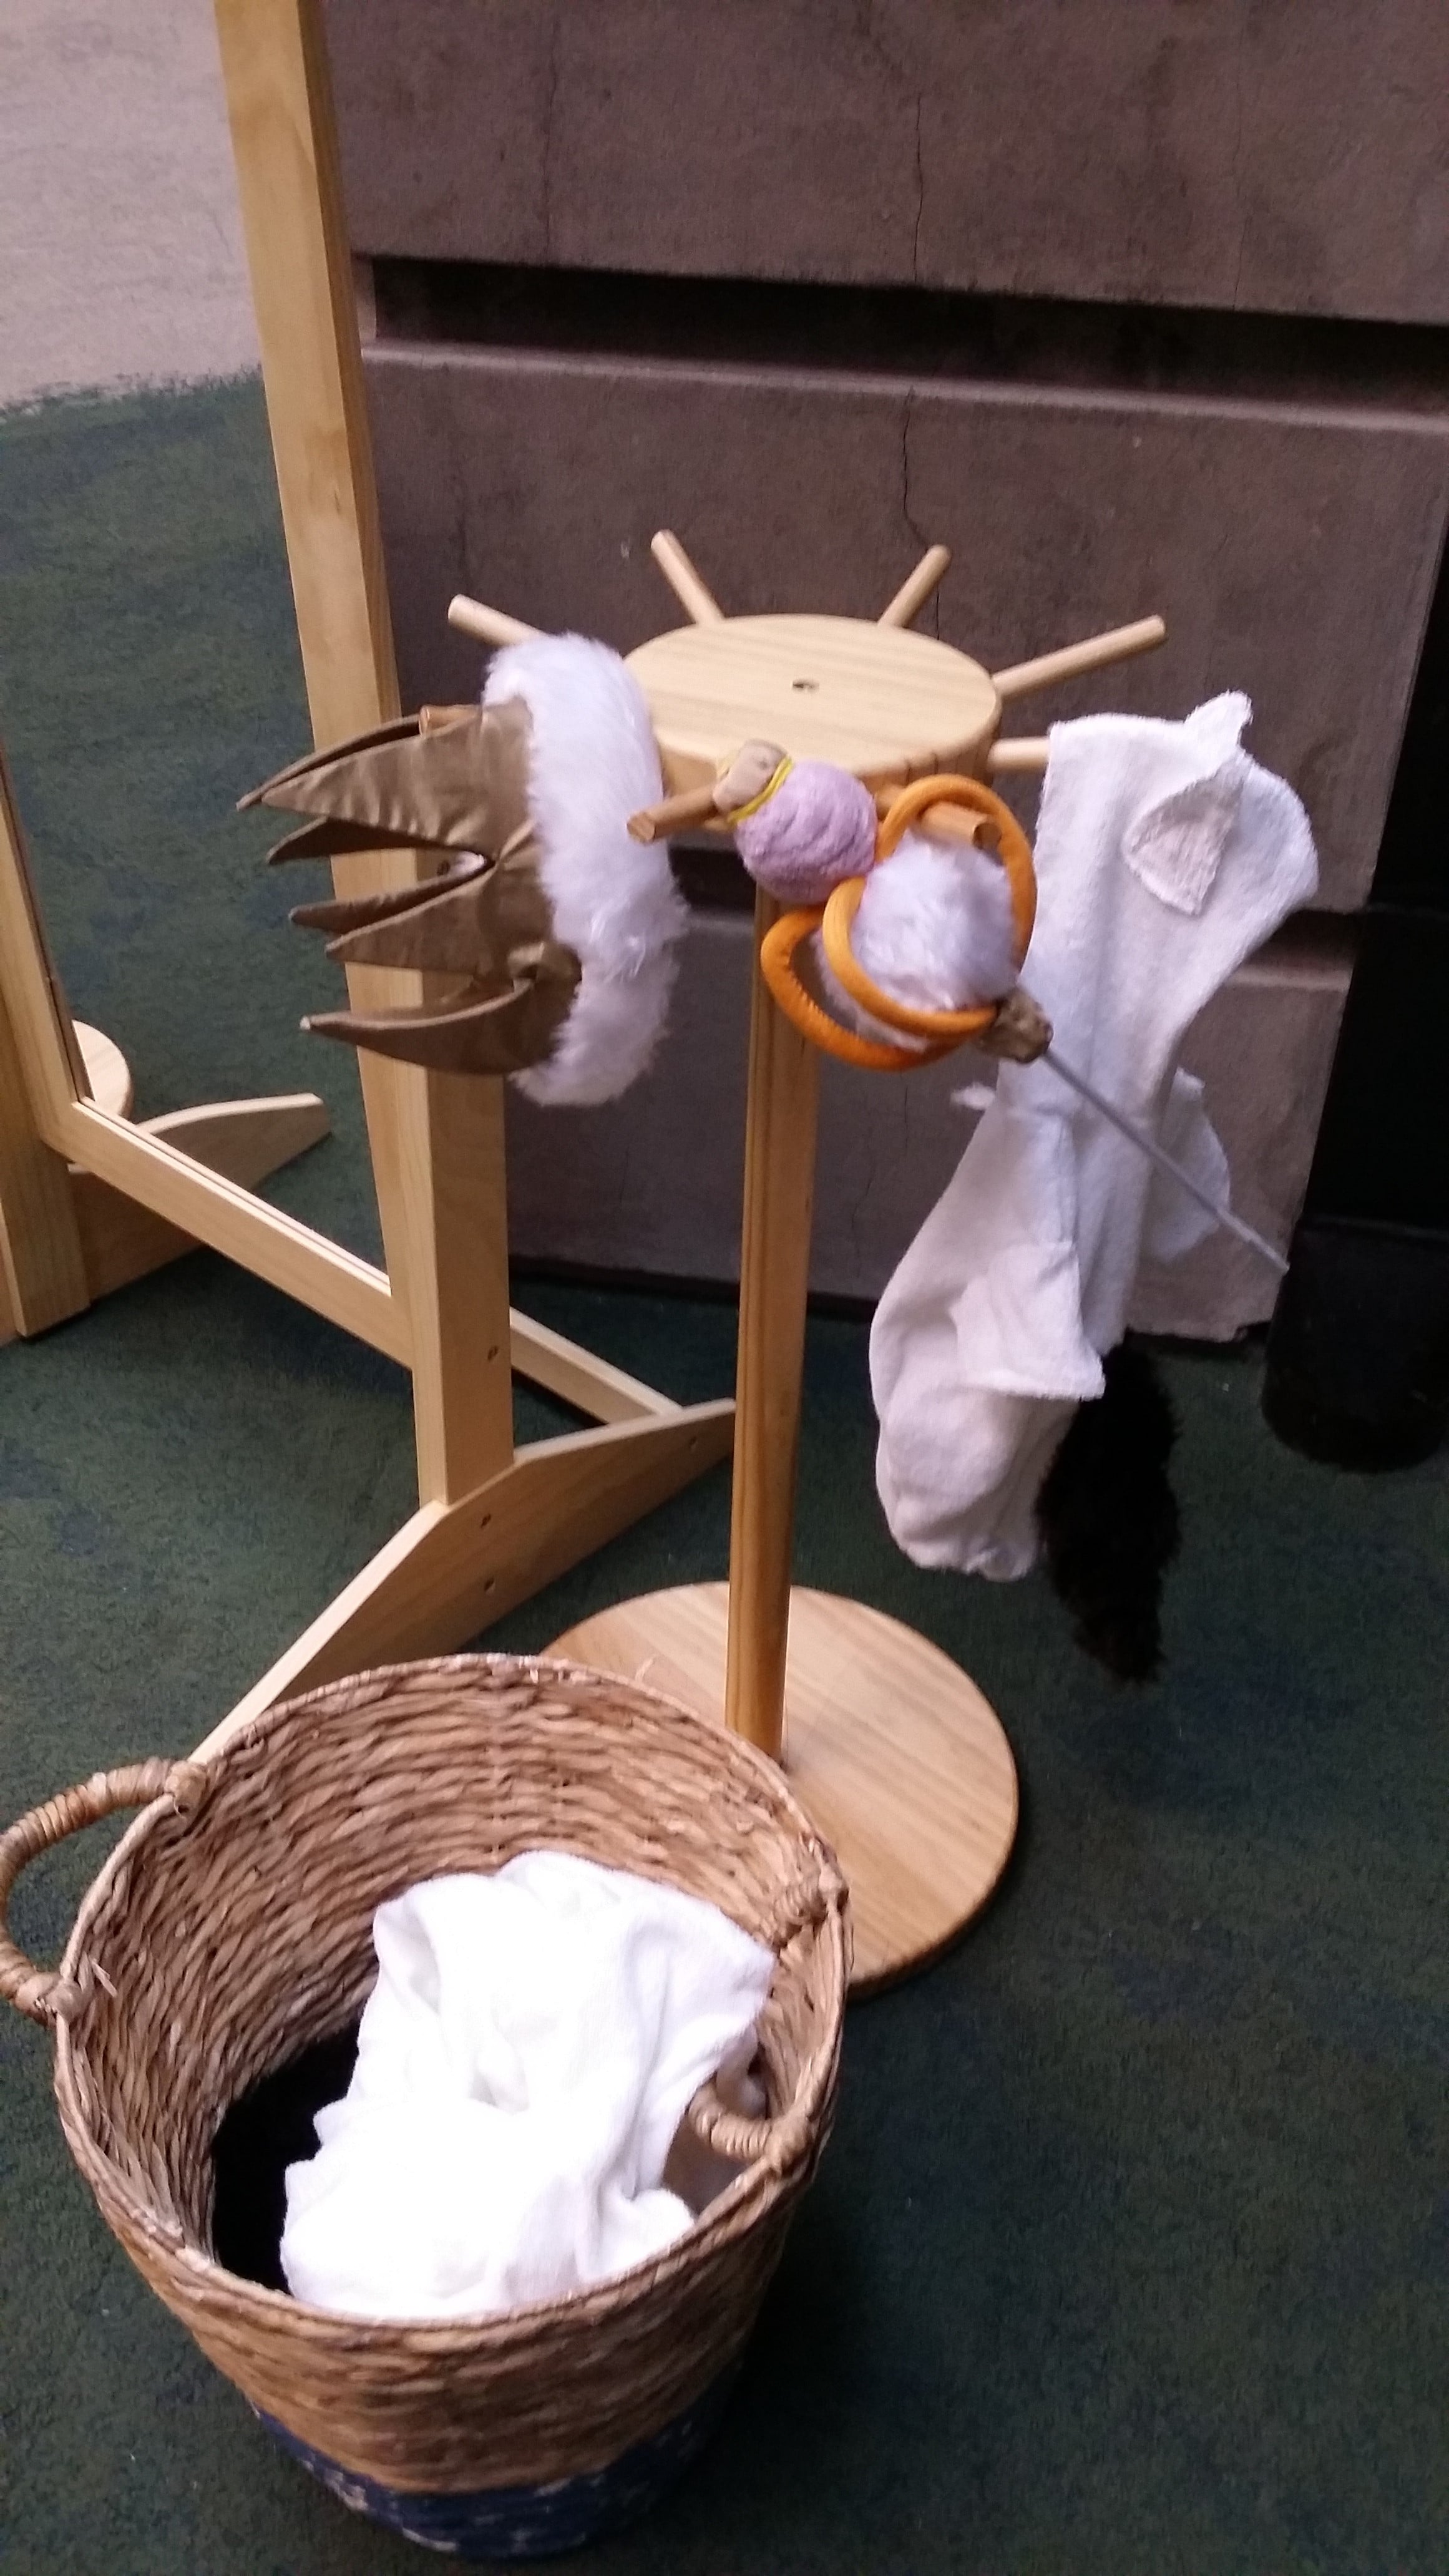 Max's crown and staff provide opportunities for imaginative role play.